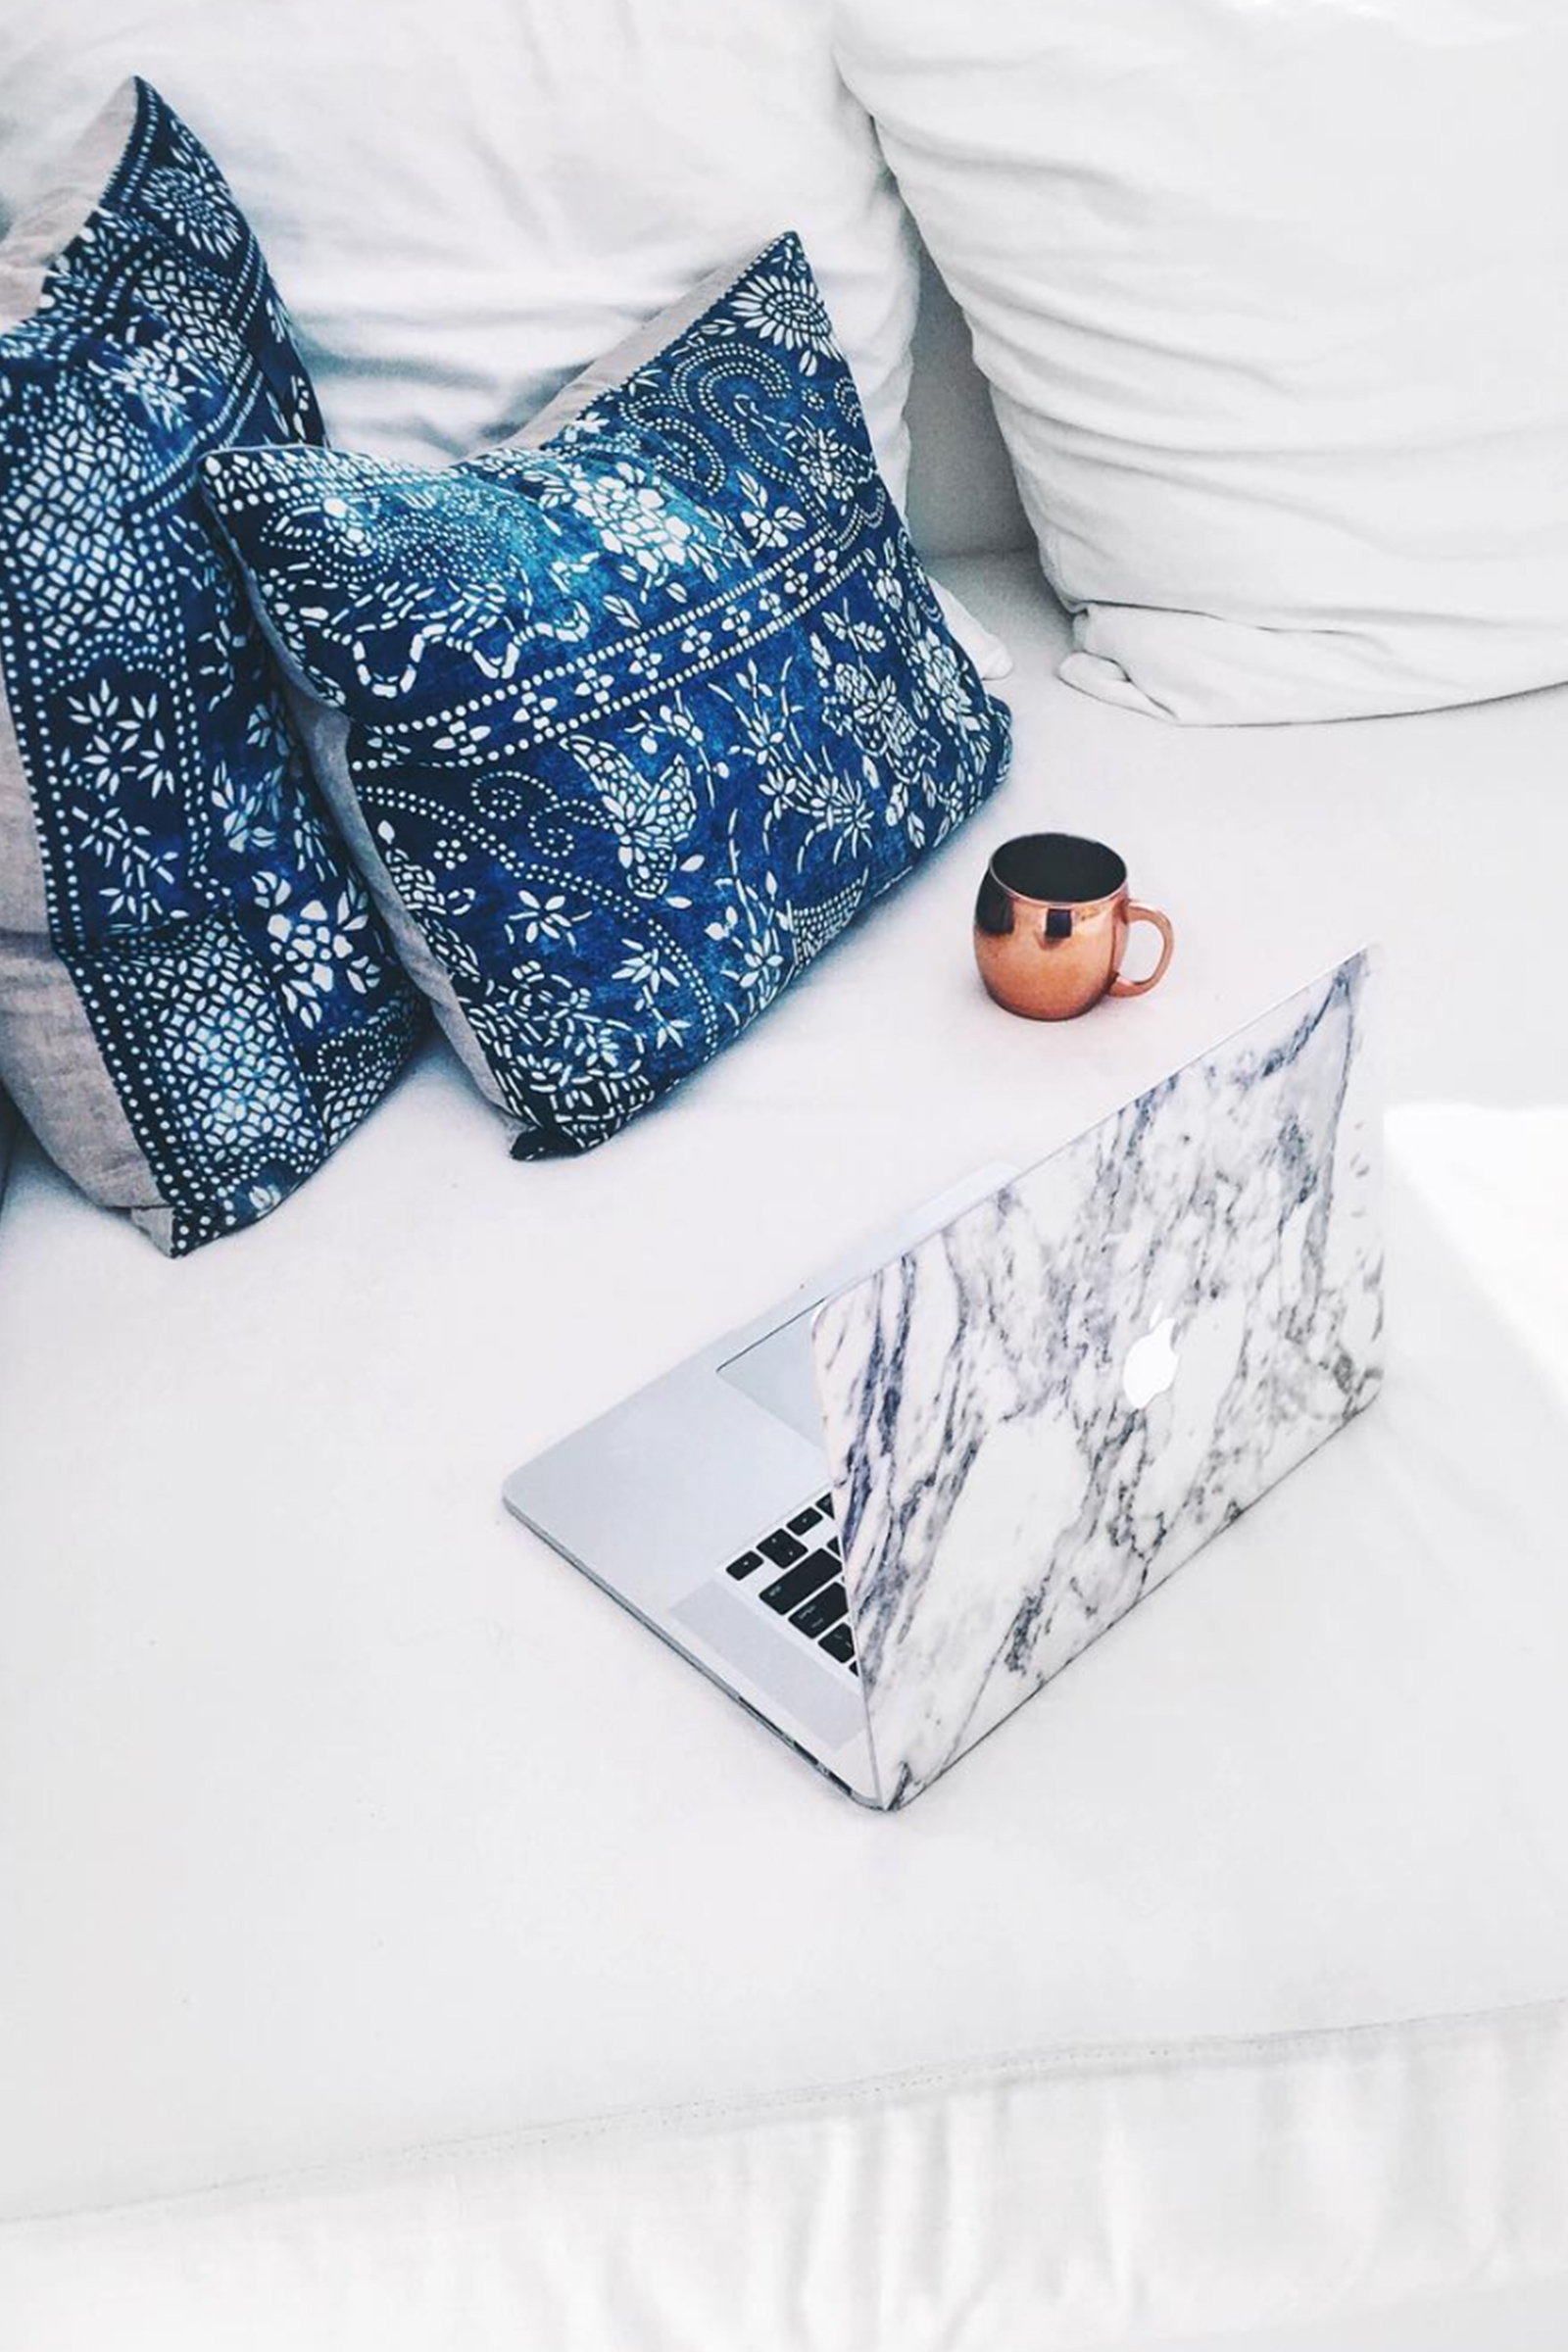 Cozy Work Station / Coffee / Marble Laptop Cover / Mudcloth Pillows / Home Decor / Kelly Fiance Creative